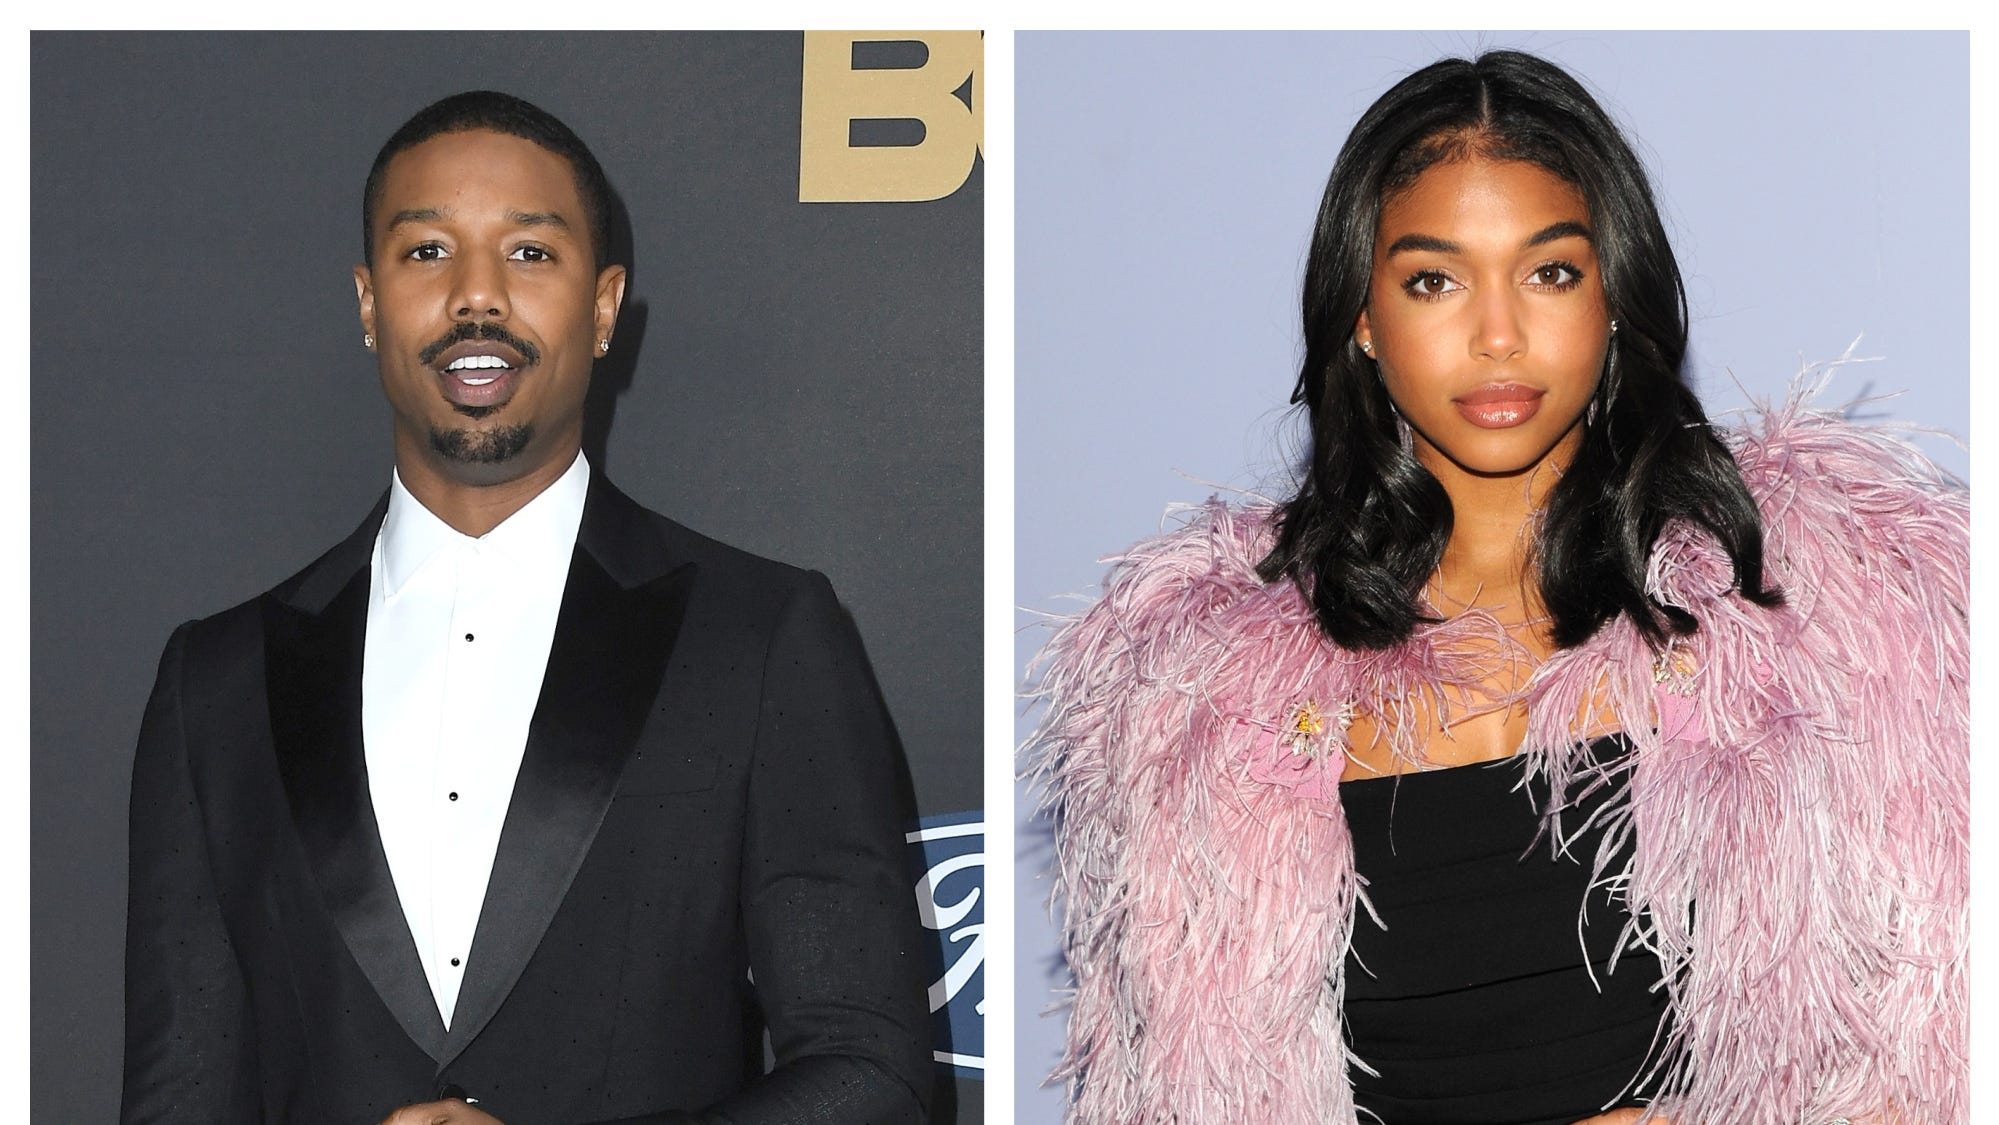 Michael B. Jordan and Lori Harvey are an Instagram official couple after dual romantic posts – USA TODAY